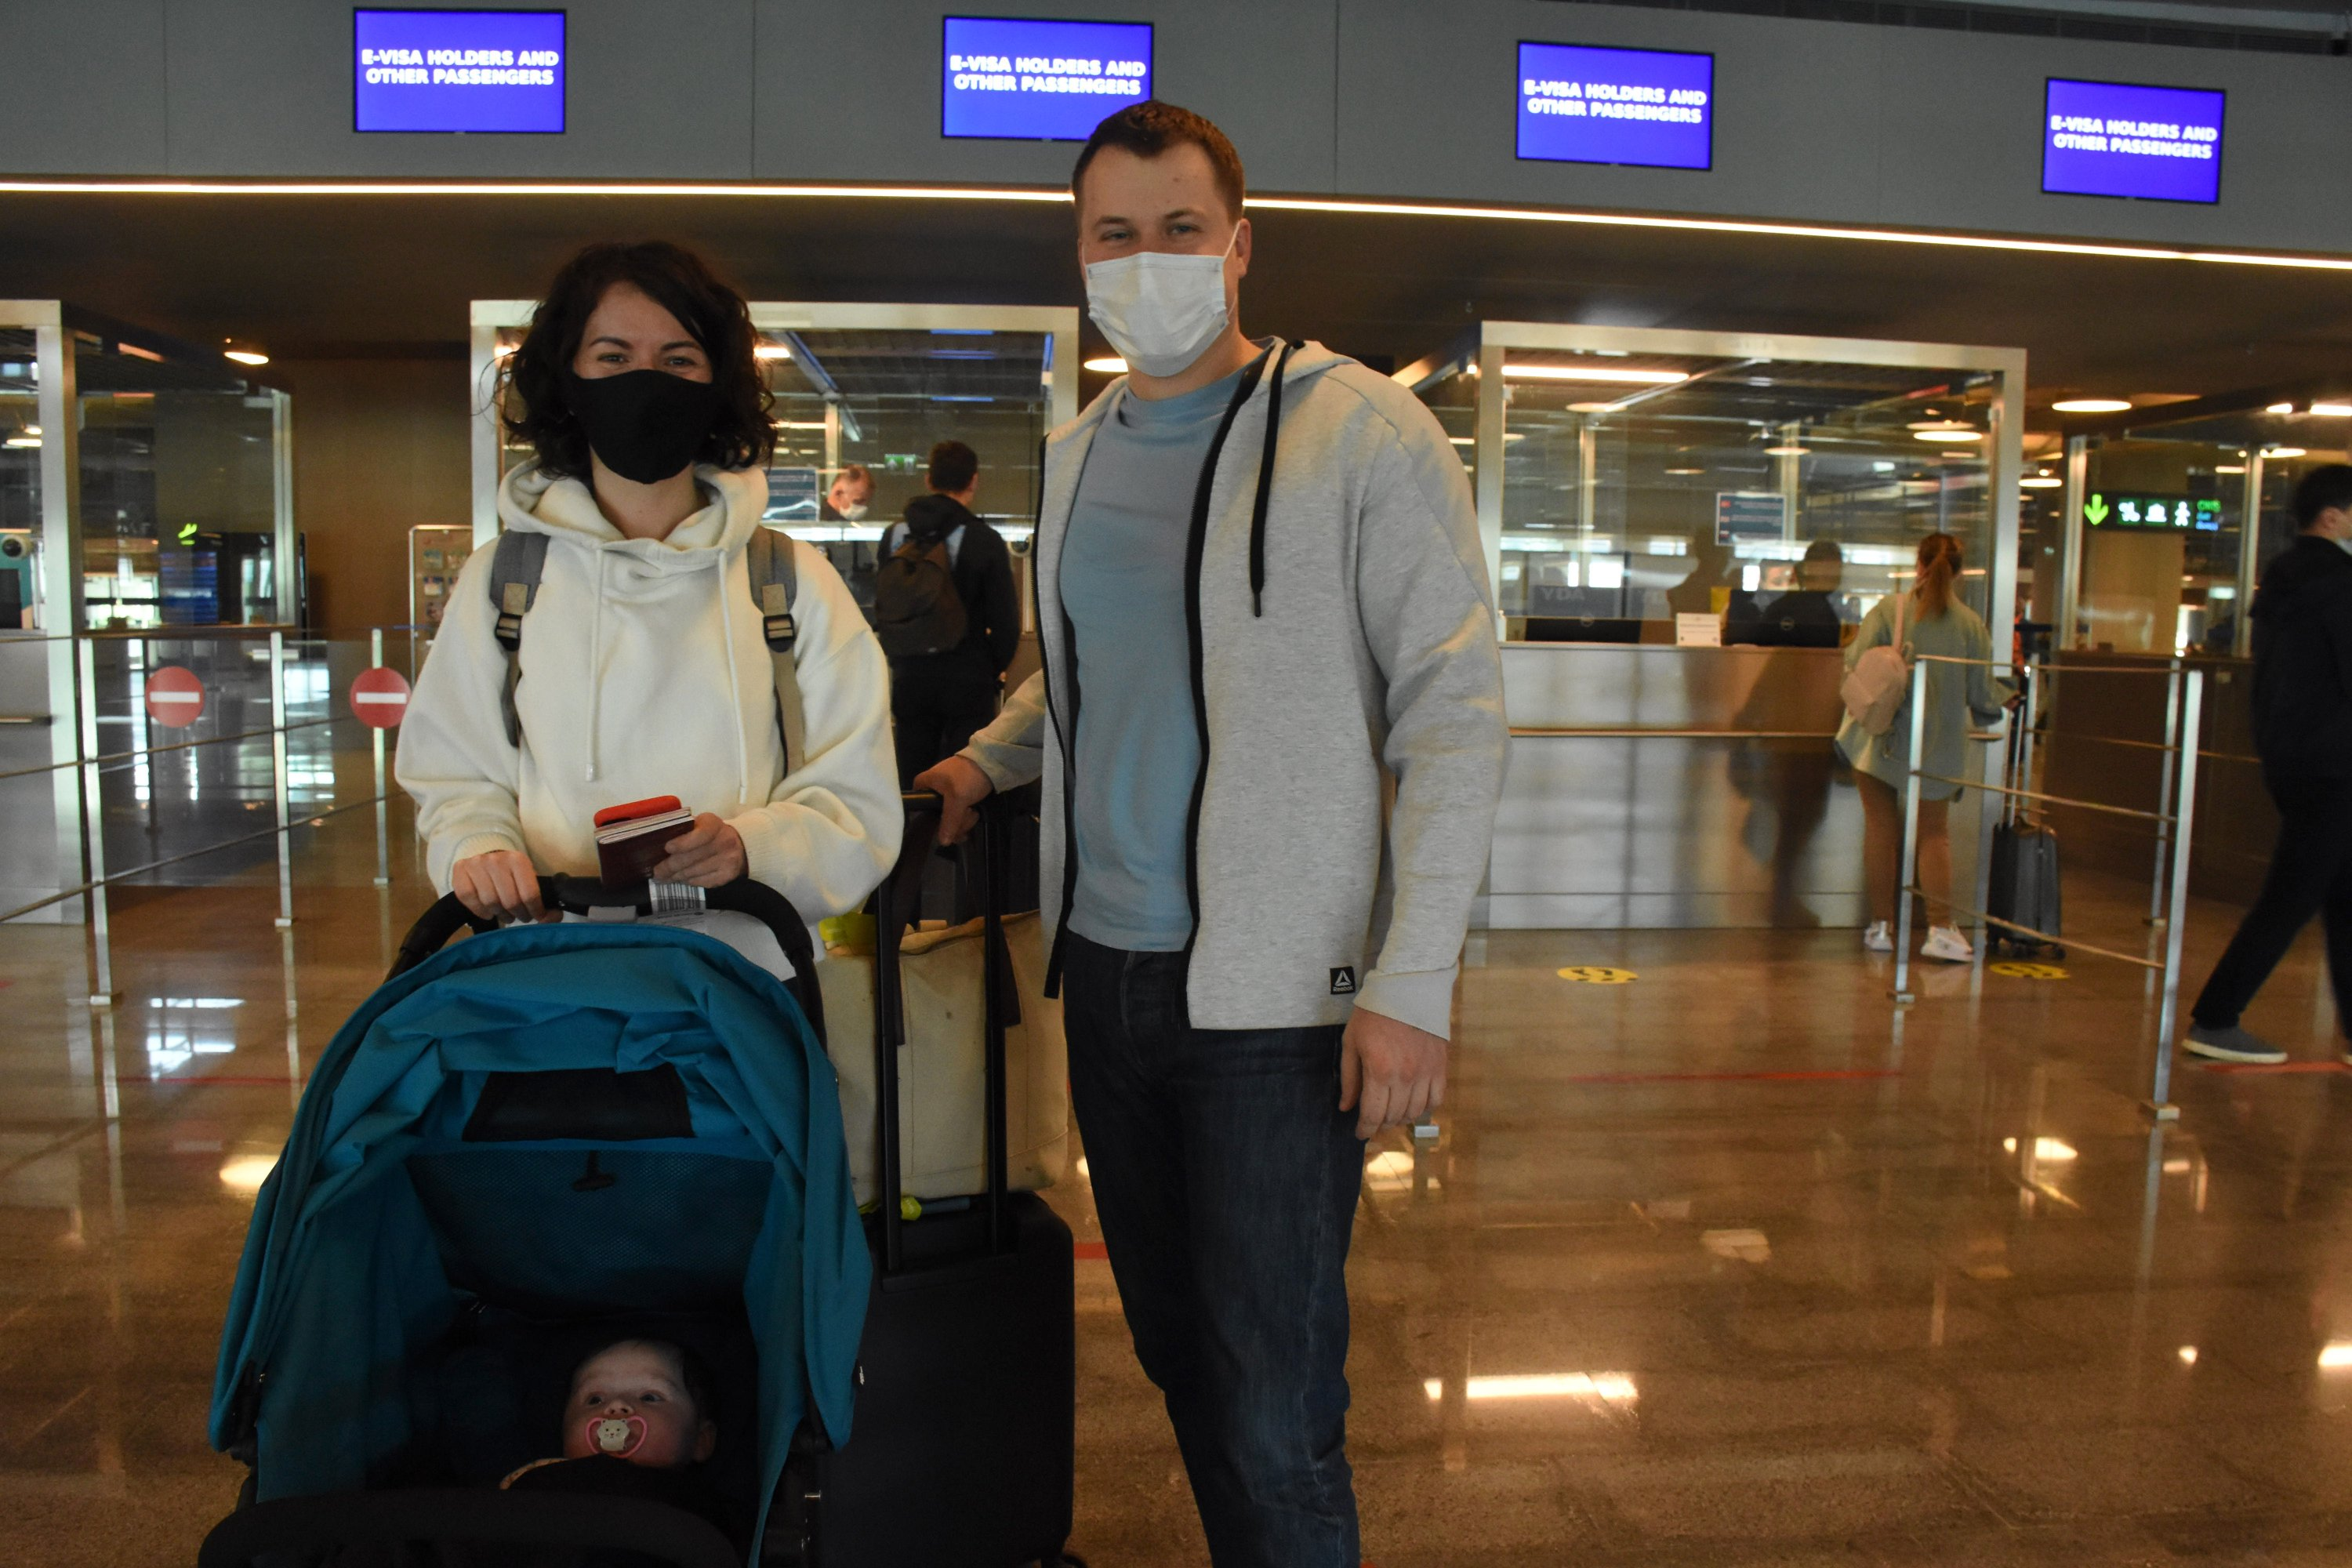 Anastasia Cherkassenka and her husband Denis Cherkassenko arrive at Dalaman Airport, Muğla, southwestern Turkey, March 19, 2021. (AA Photo)